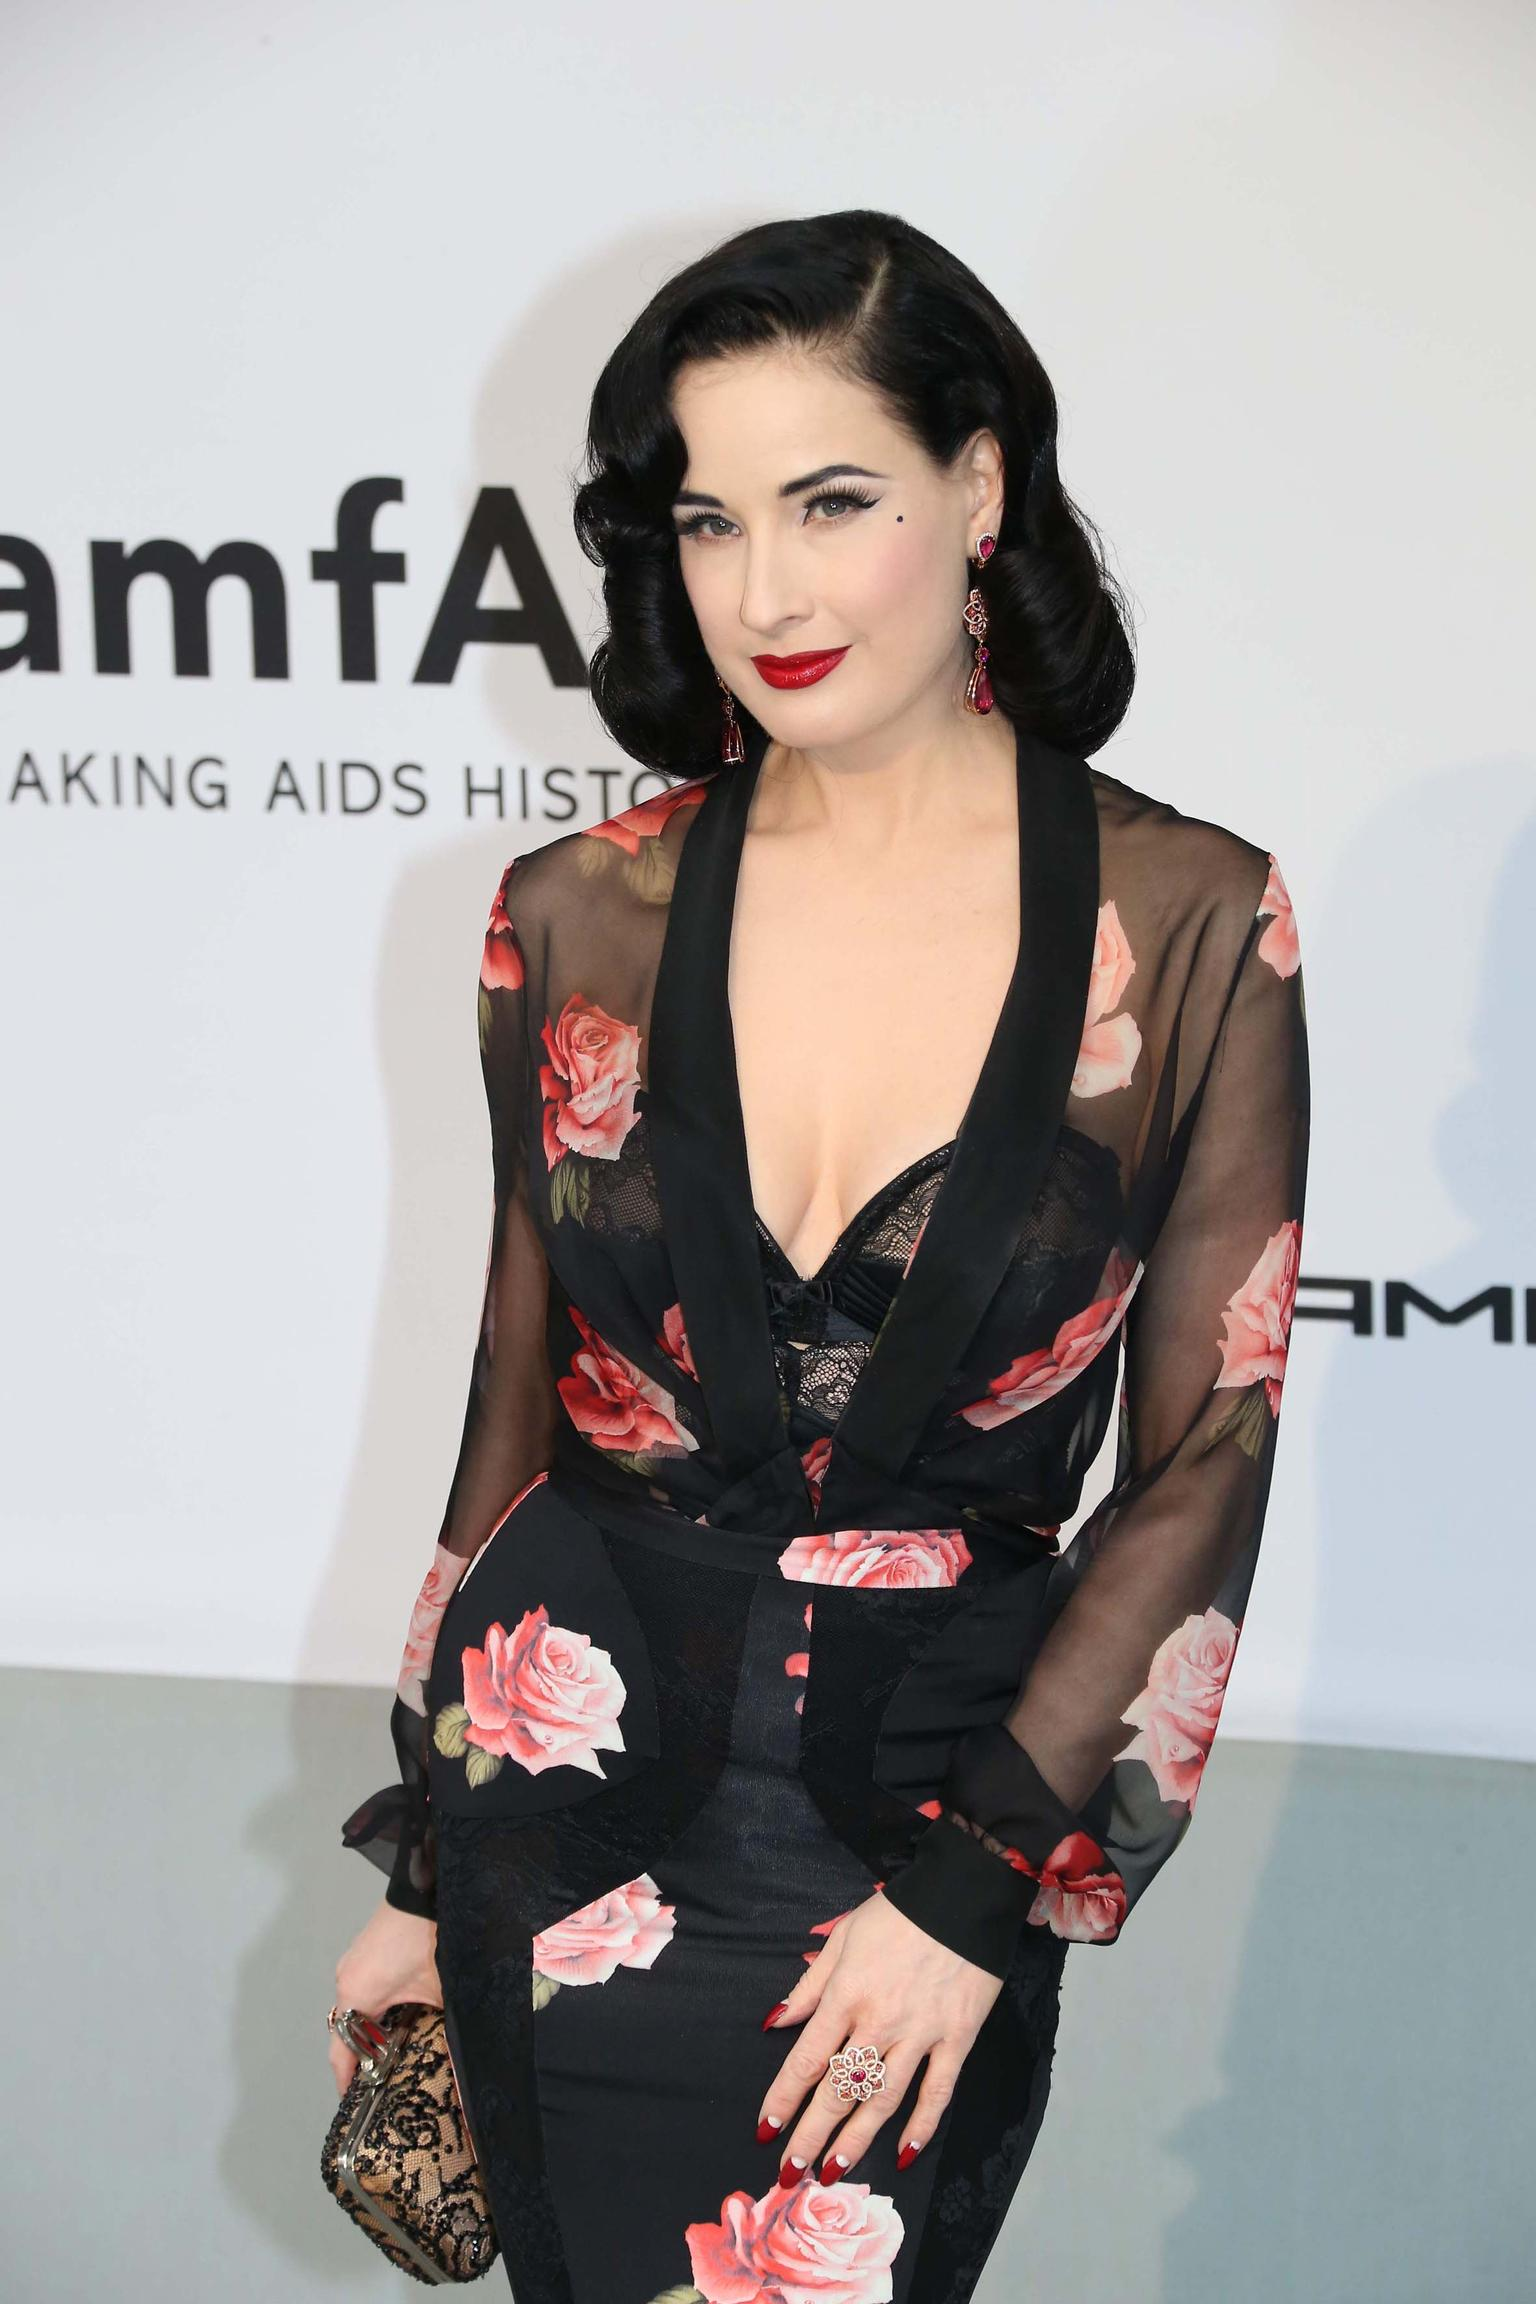 Dita Von Teese wore a pair of tourmaline and diamond earrings and a 5ct floral ruby ring, both by Chopard, to the amfAR Charity Gala in Cannes